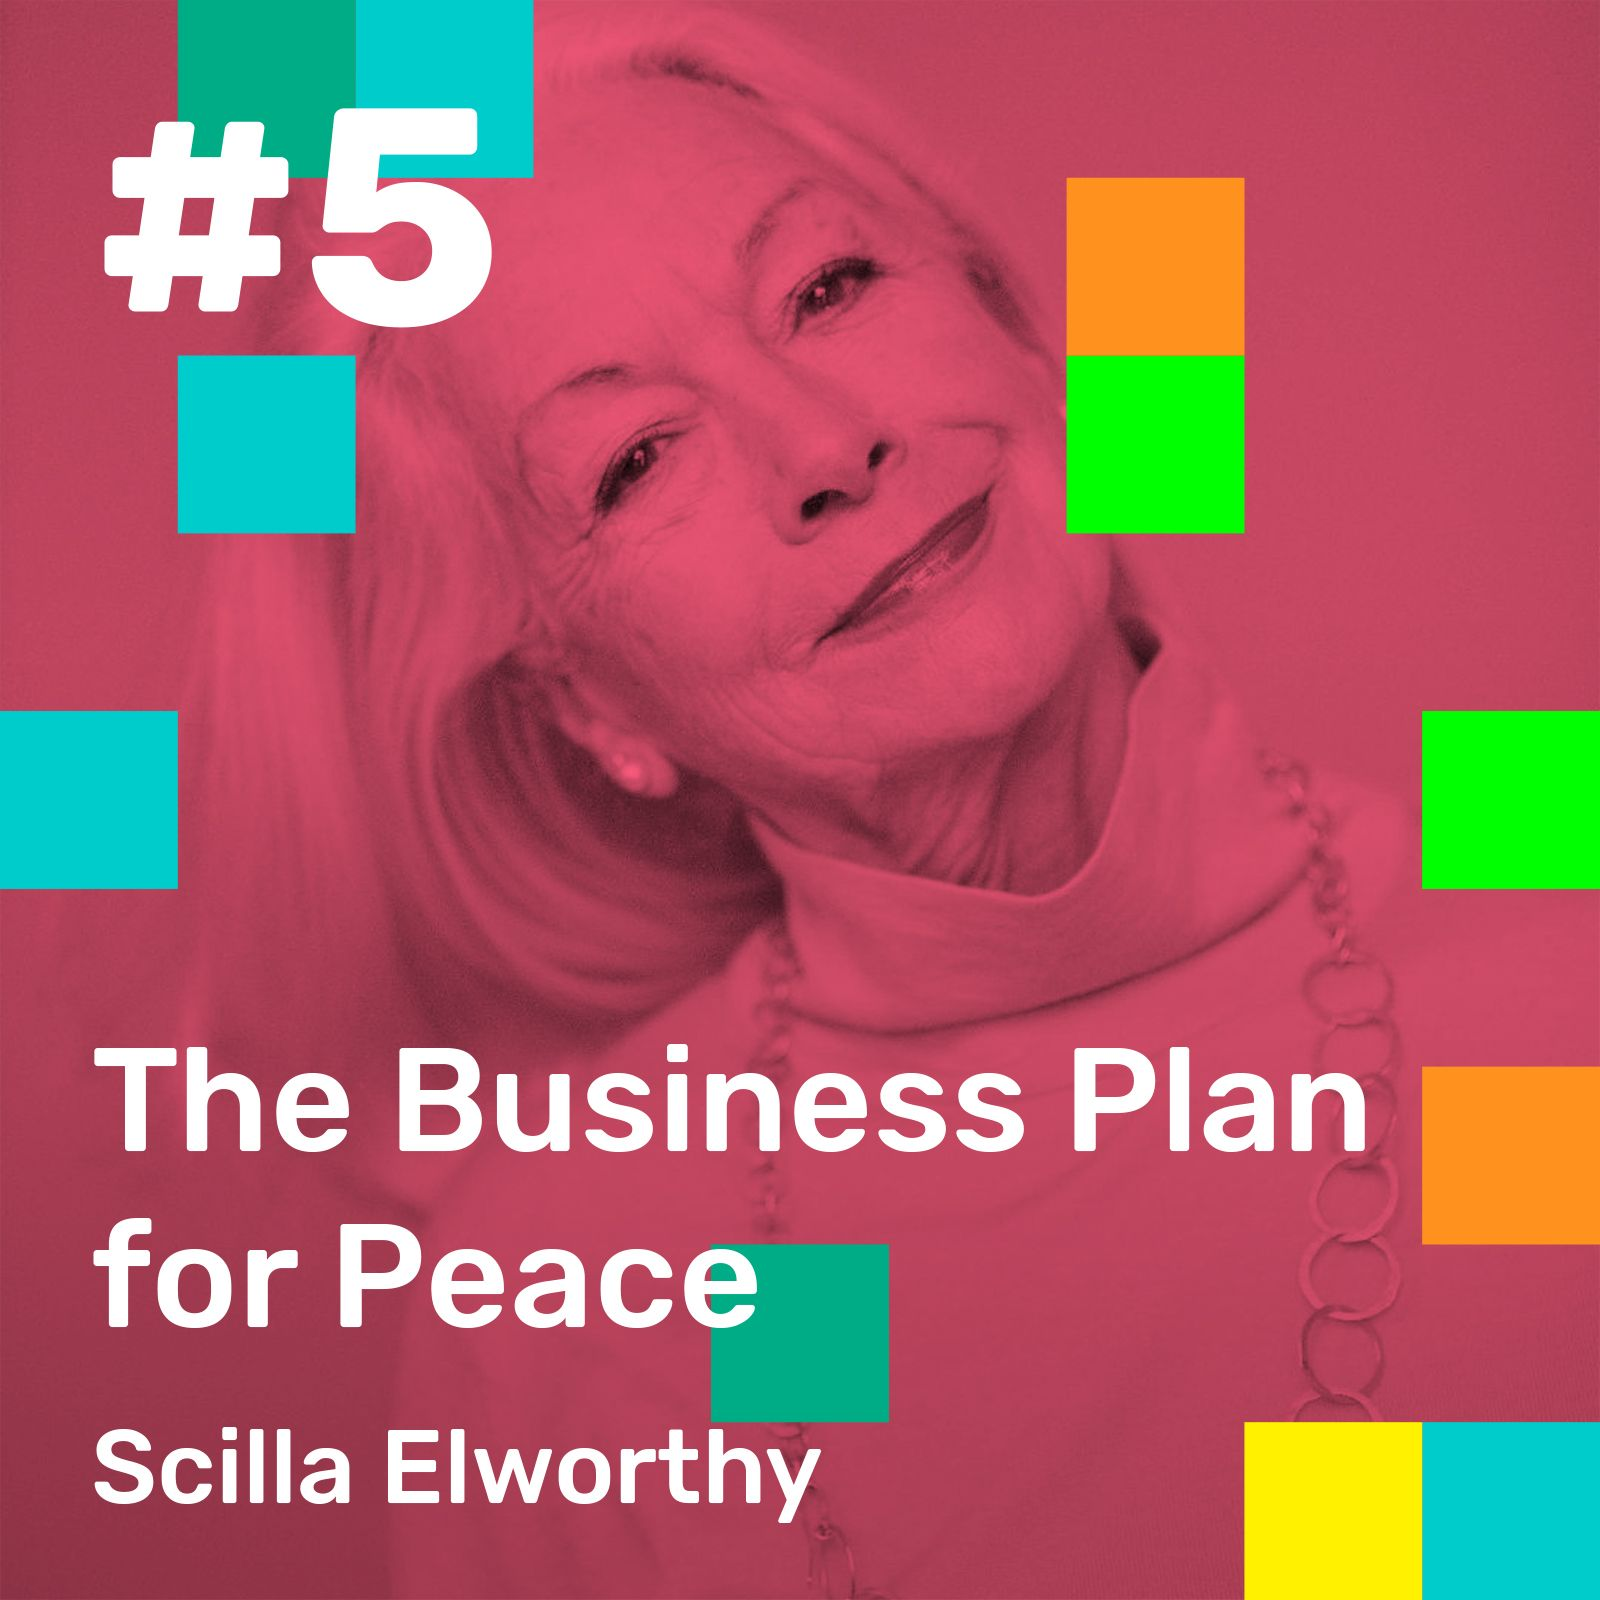 005 The Business Plan for Peace, with Scilla Elworthy